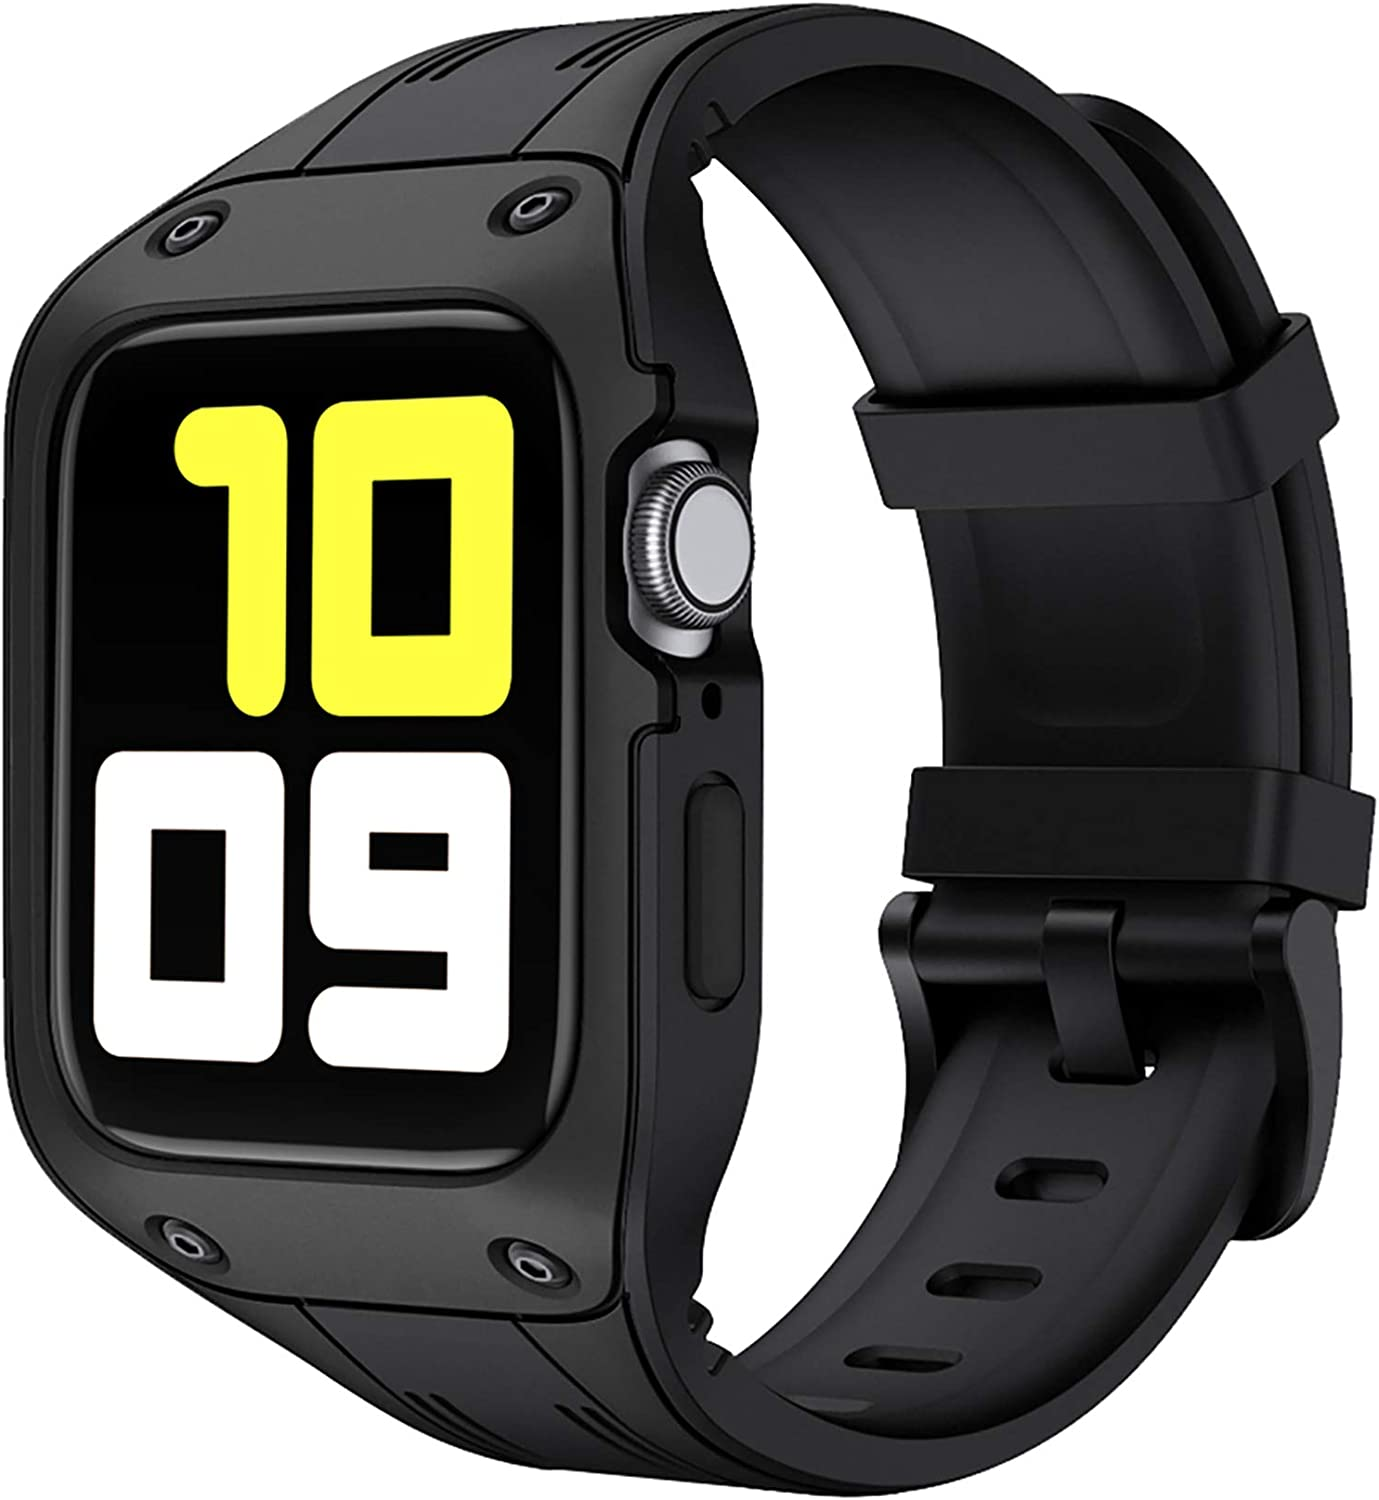 fastgo Compatible with Apple Watch Bands Rugged Bumper Case 44mm 42mm TPU Smart Watch Wristband Sports Bracelet Breathable Strap for IWatch SE Series 6 5 4 3 2 1 Women Men Gift